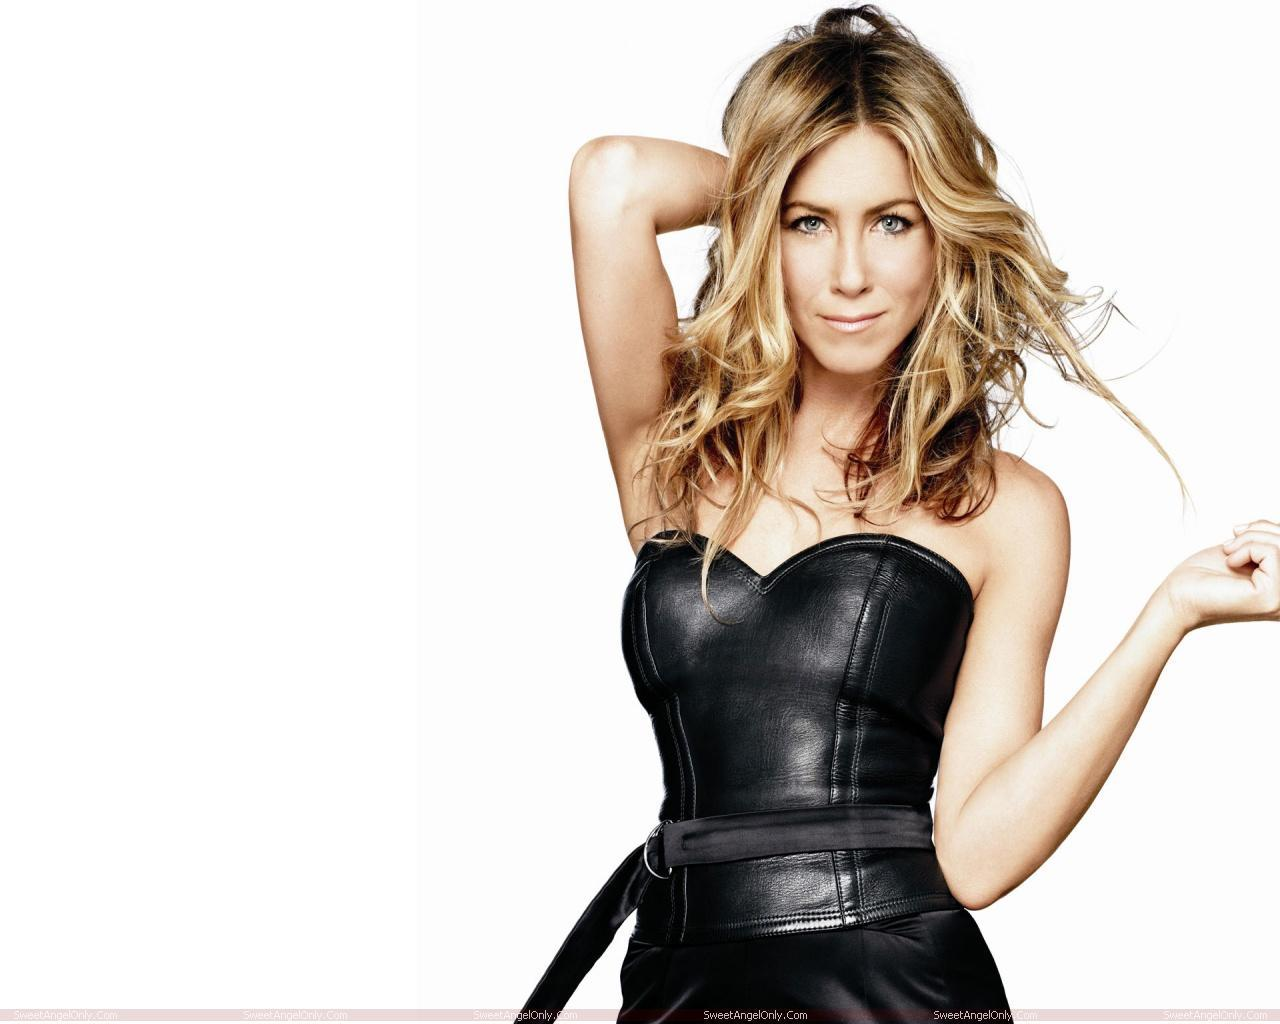 http://2.bp.blogspot.com/-L2TWnklufg8/TWVvo1n3FXI/AAAAAAAAElI/sTrUZopgG1M/s1600/actress_jennifer_aniston_hot_wallpapers_in_bikini_sweetangelonly_17.jpg